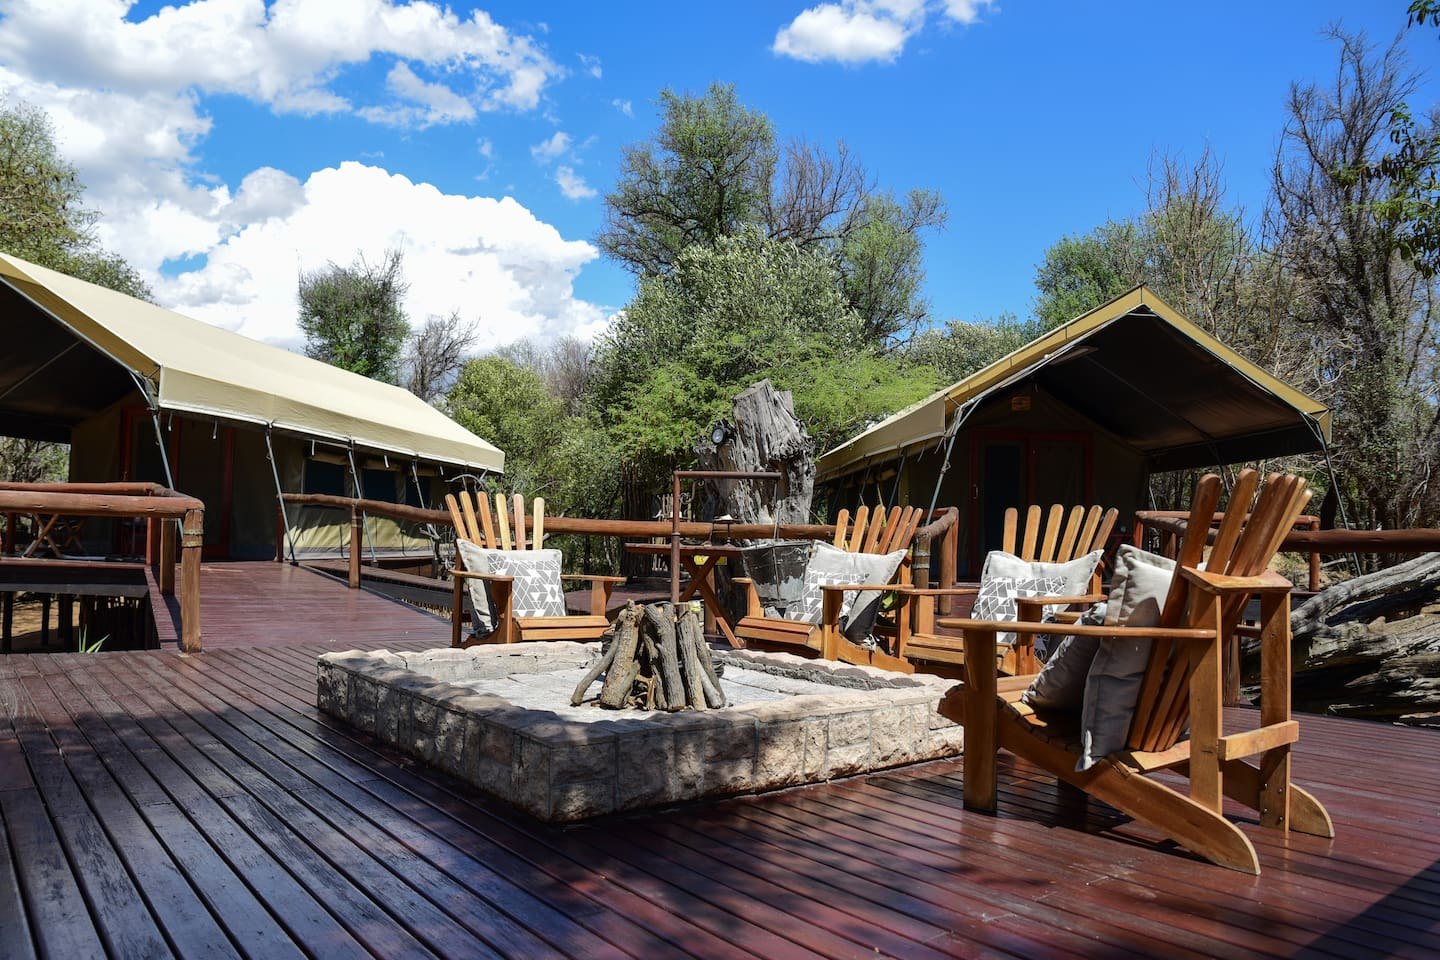 The tented camp